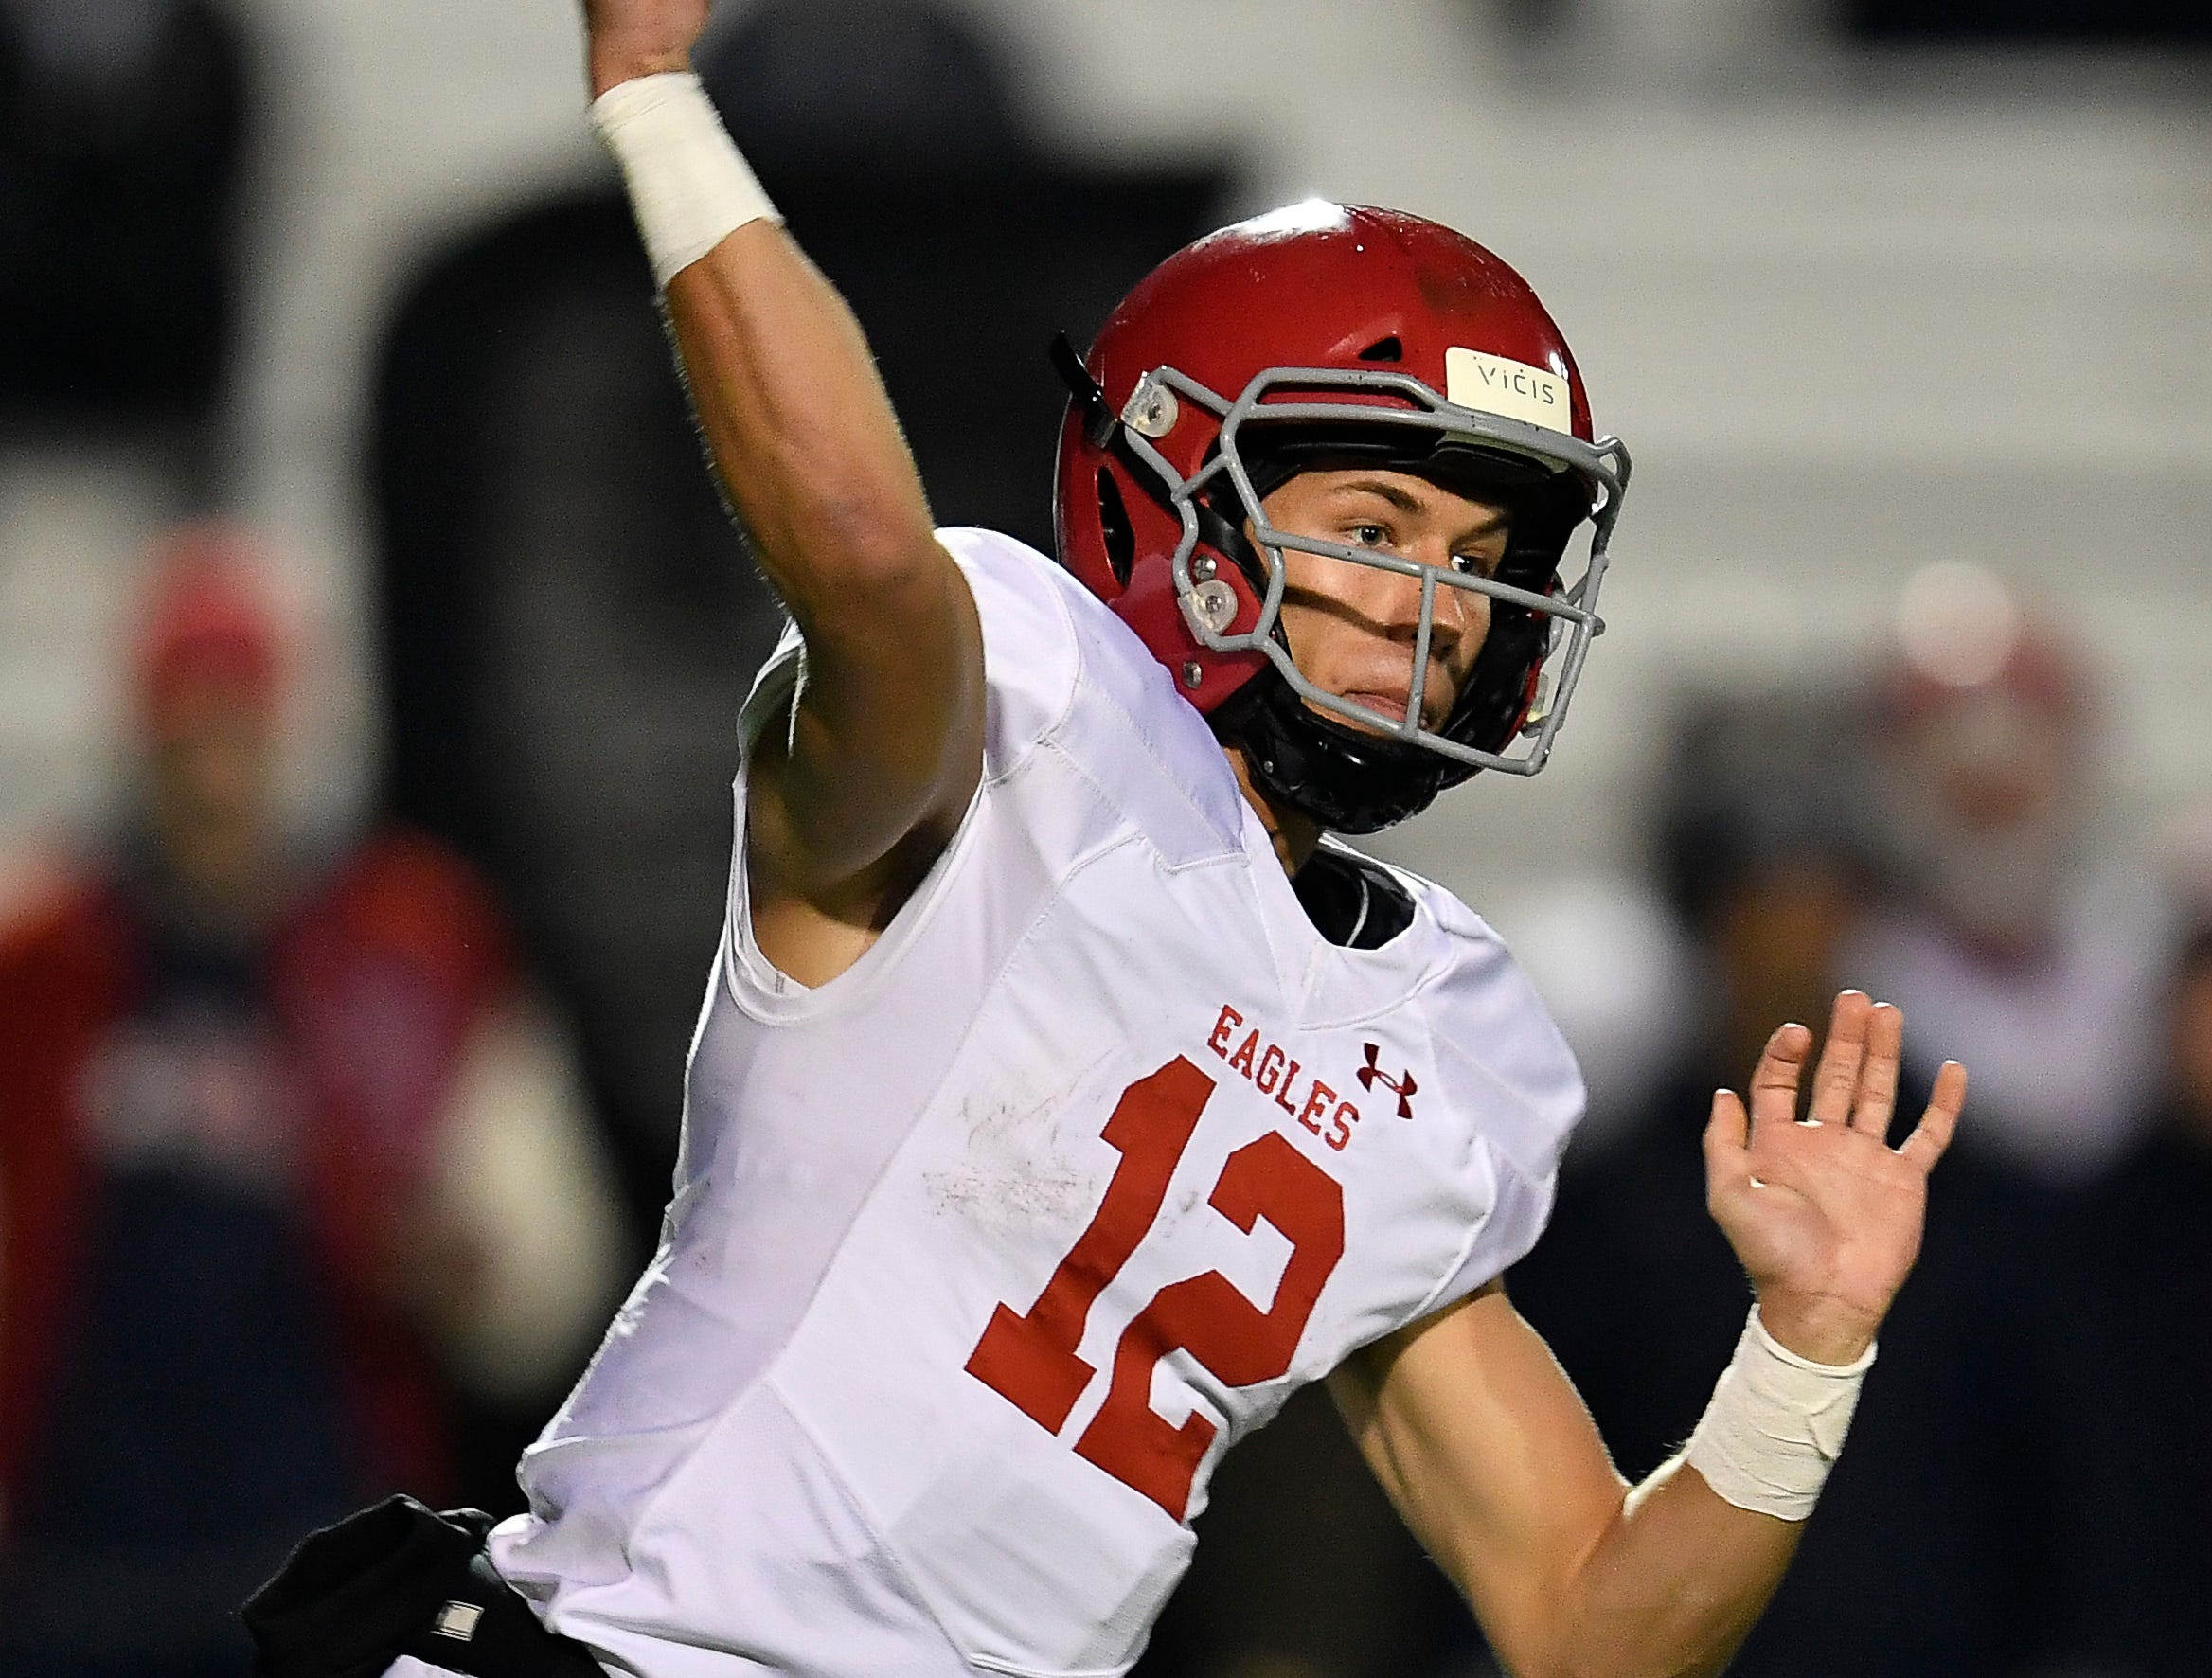 Brentwood Academy quarterback Wade Williams (12) throws a pass against MBA during the first quarter of their 2018 Division II Class AAA State Football Playoff game at Montgomery Bell Academy Friday, Nov. 16, 2018, in Nashville, Tenn.